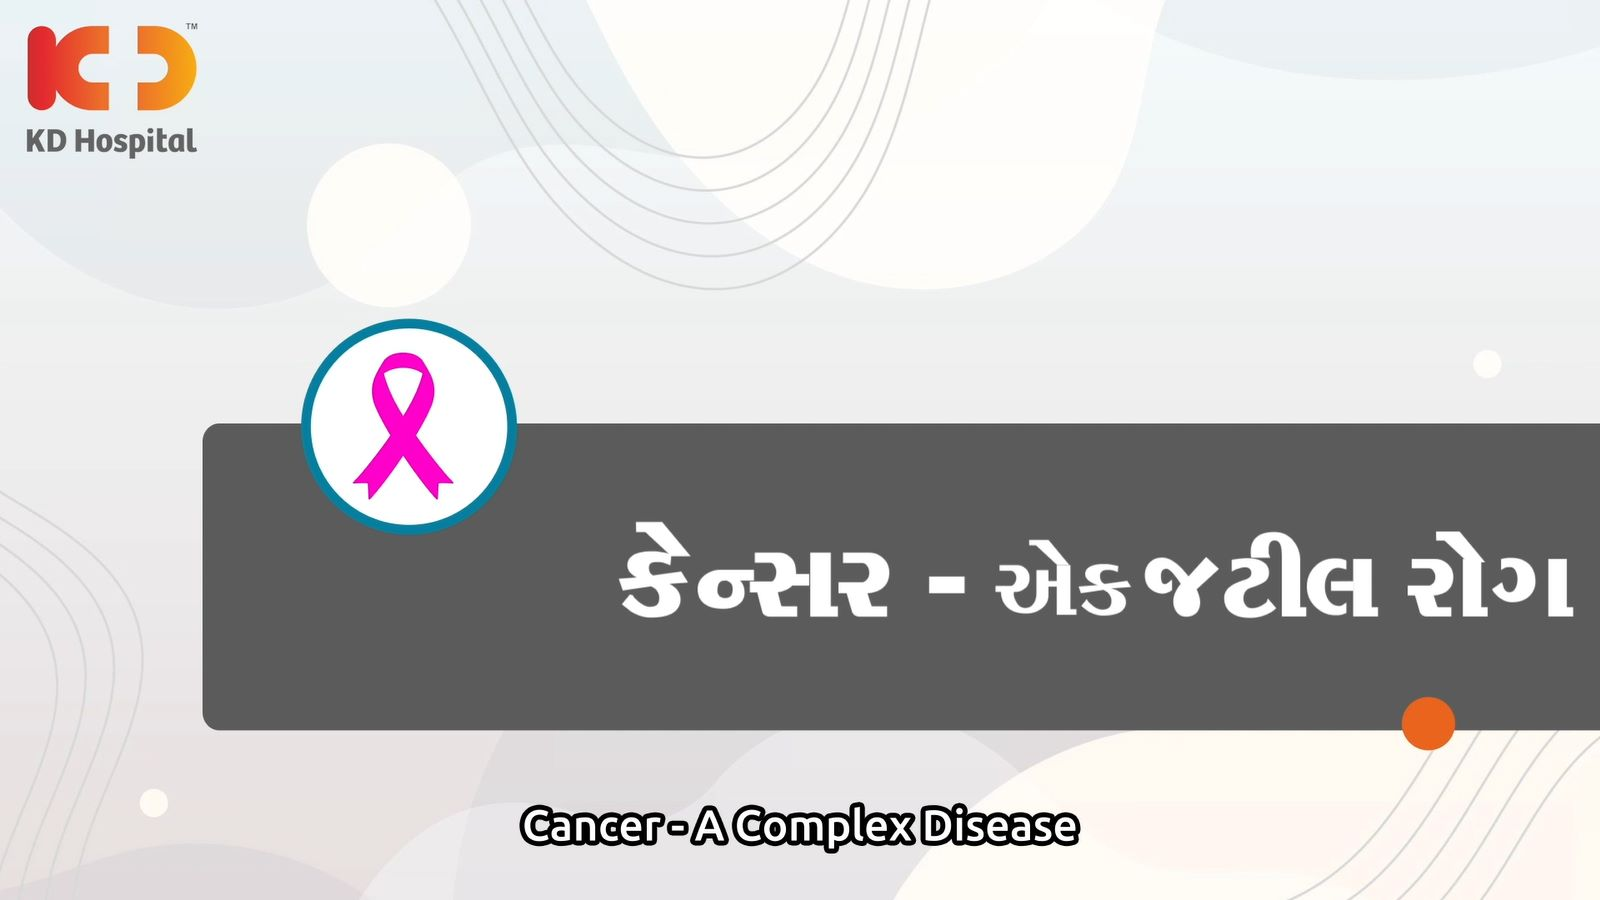 KD Hospital's very senior Team member of Gastro Sciences Dr Vismit Joshipura throws light on Cancer-related health issues which is a must in today's time. Watch the Full episode by visiting: https://bit.ly/37GTS97  Call +919825993335 to book an appointment Now! Avail Concessional rates Until 15th August'21.